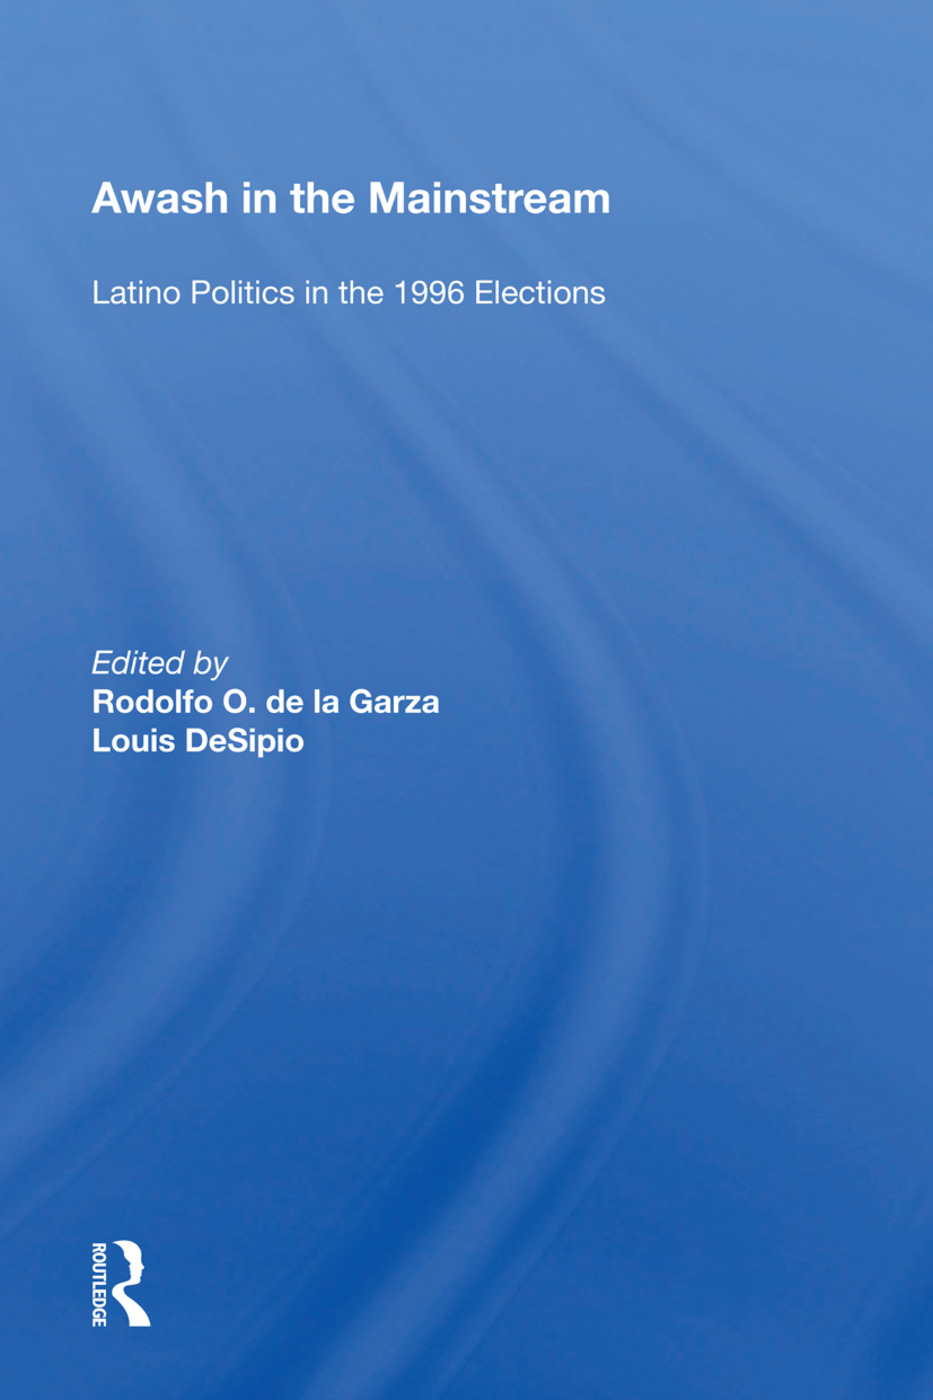 Awash in the Mainstream: Latino Politics in the 1996 Elections book cover